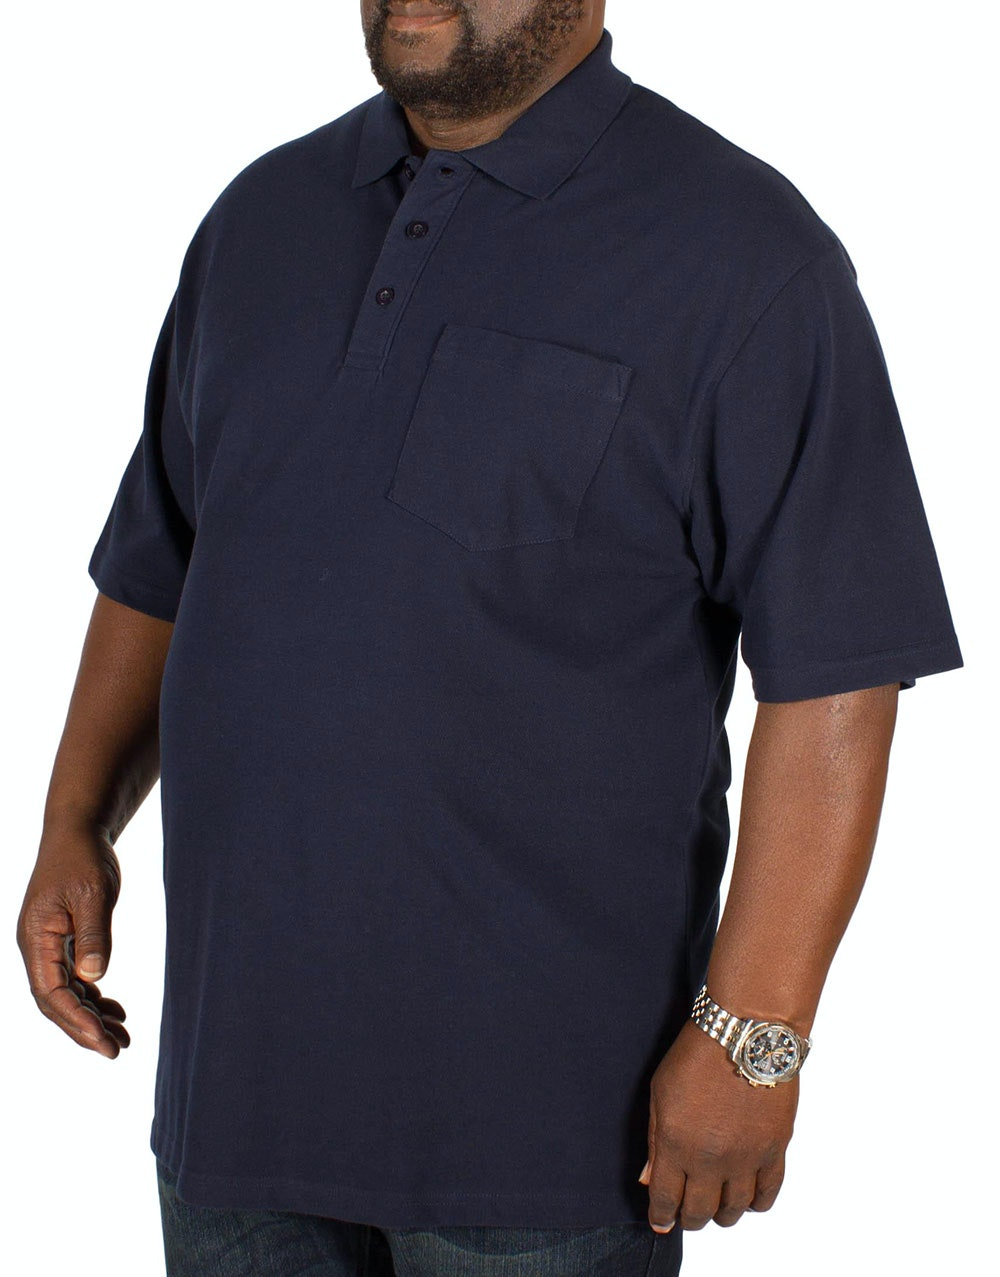 Bigdude Polo Shirt With Pocket Navy